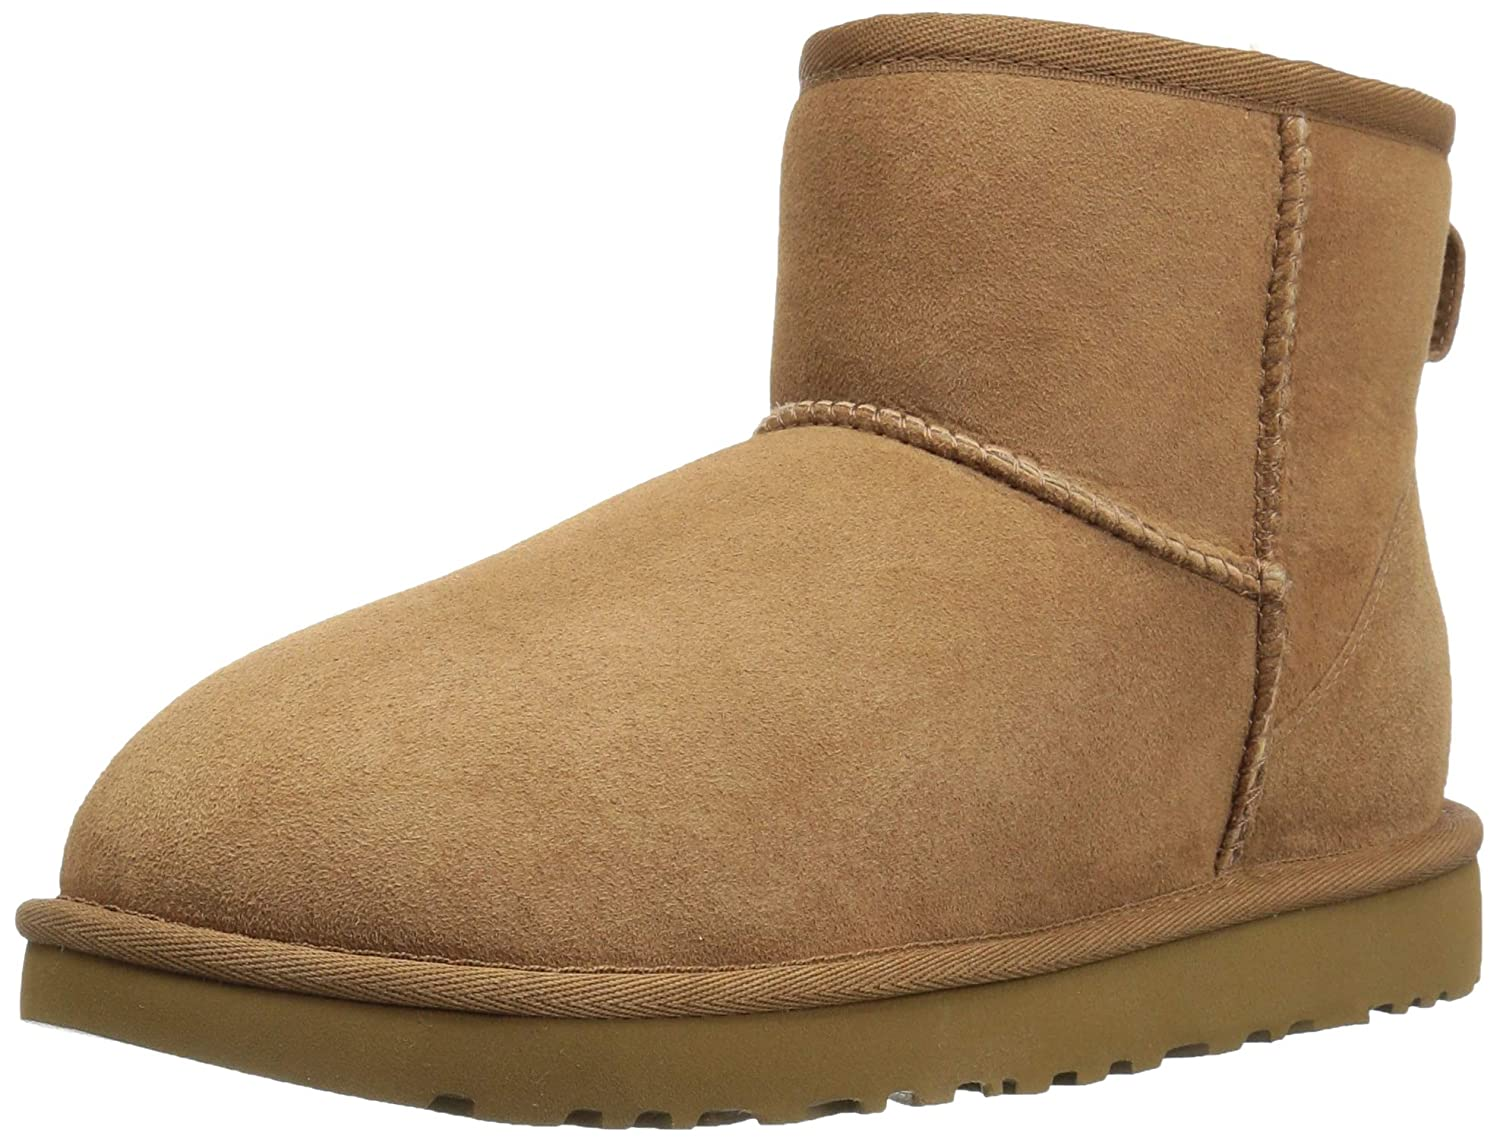 retail prices 2019 wholesale price shop for genuine UGG Women's Classic Mini Ii Che Winter Boot: Amazon.co.uk ...